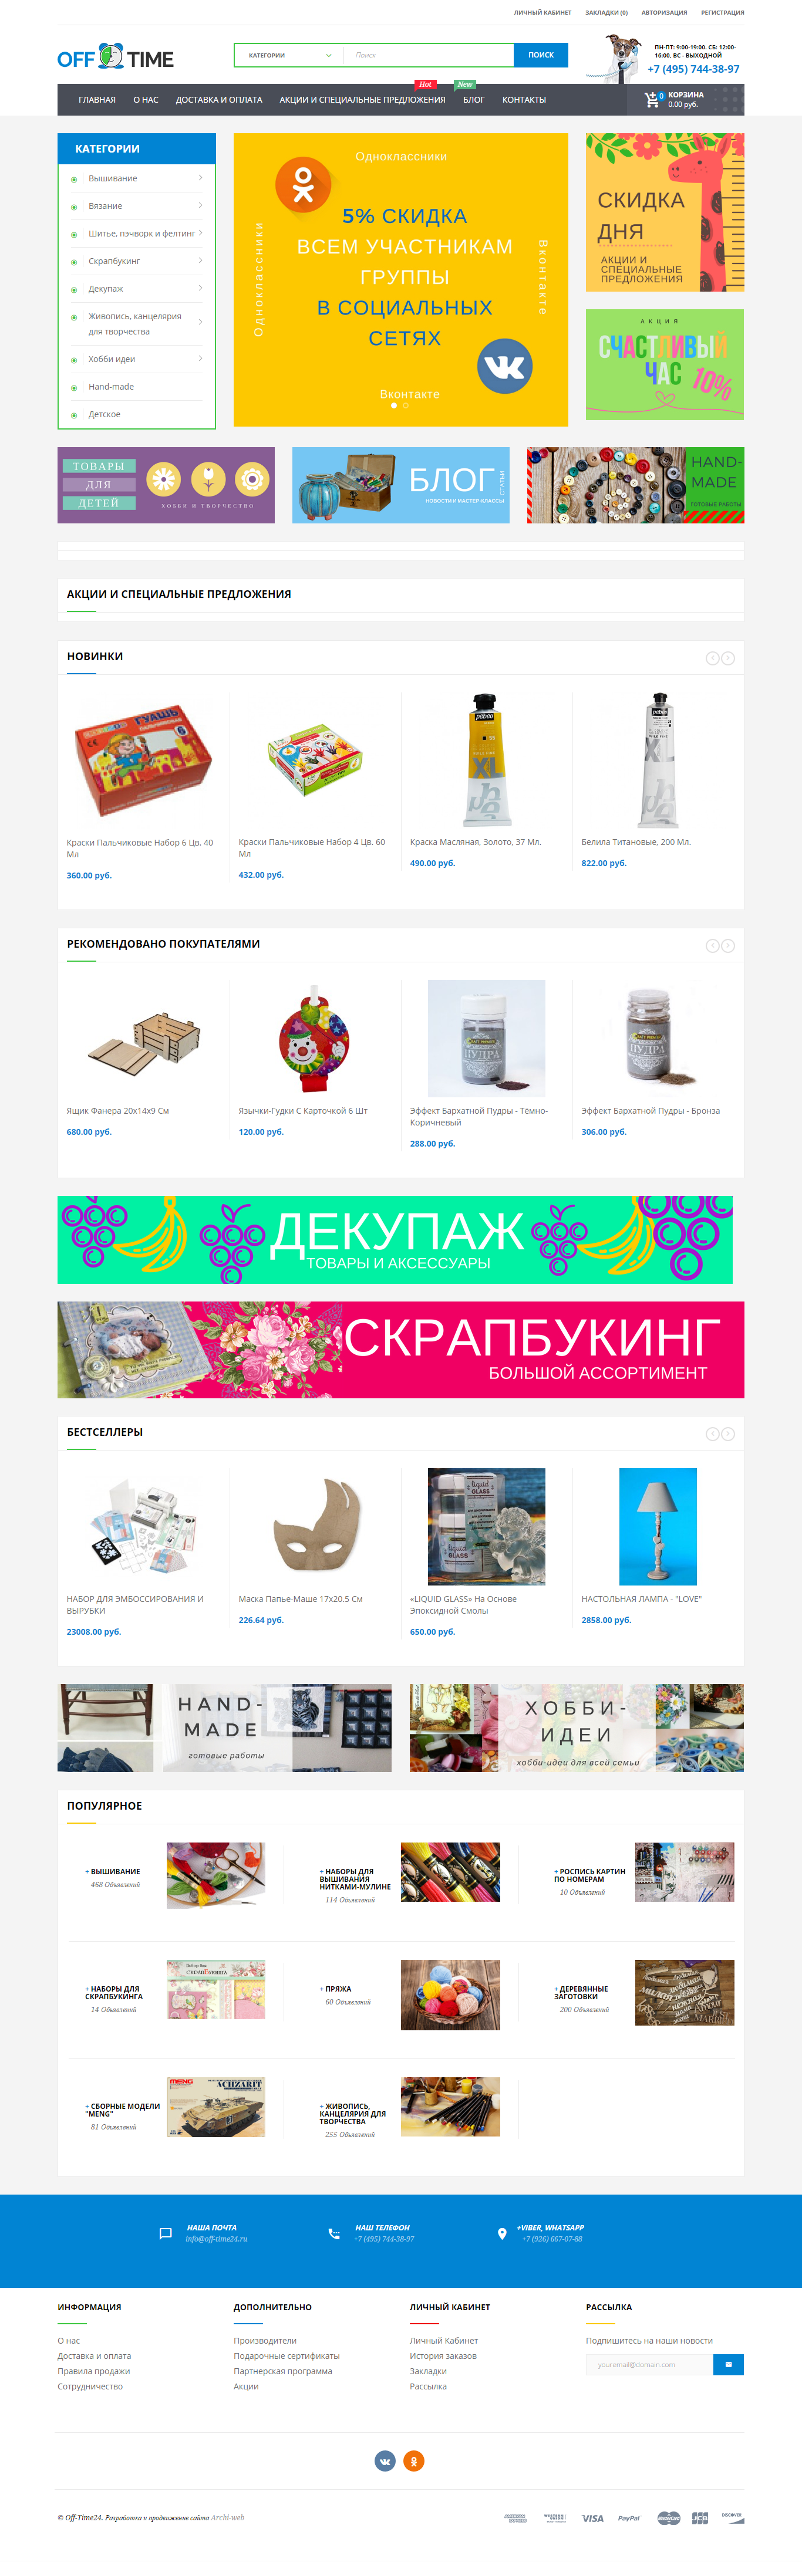 OPENCART off-time24-ru